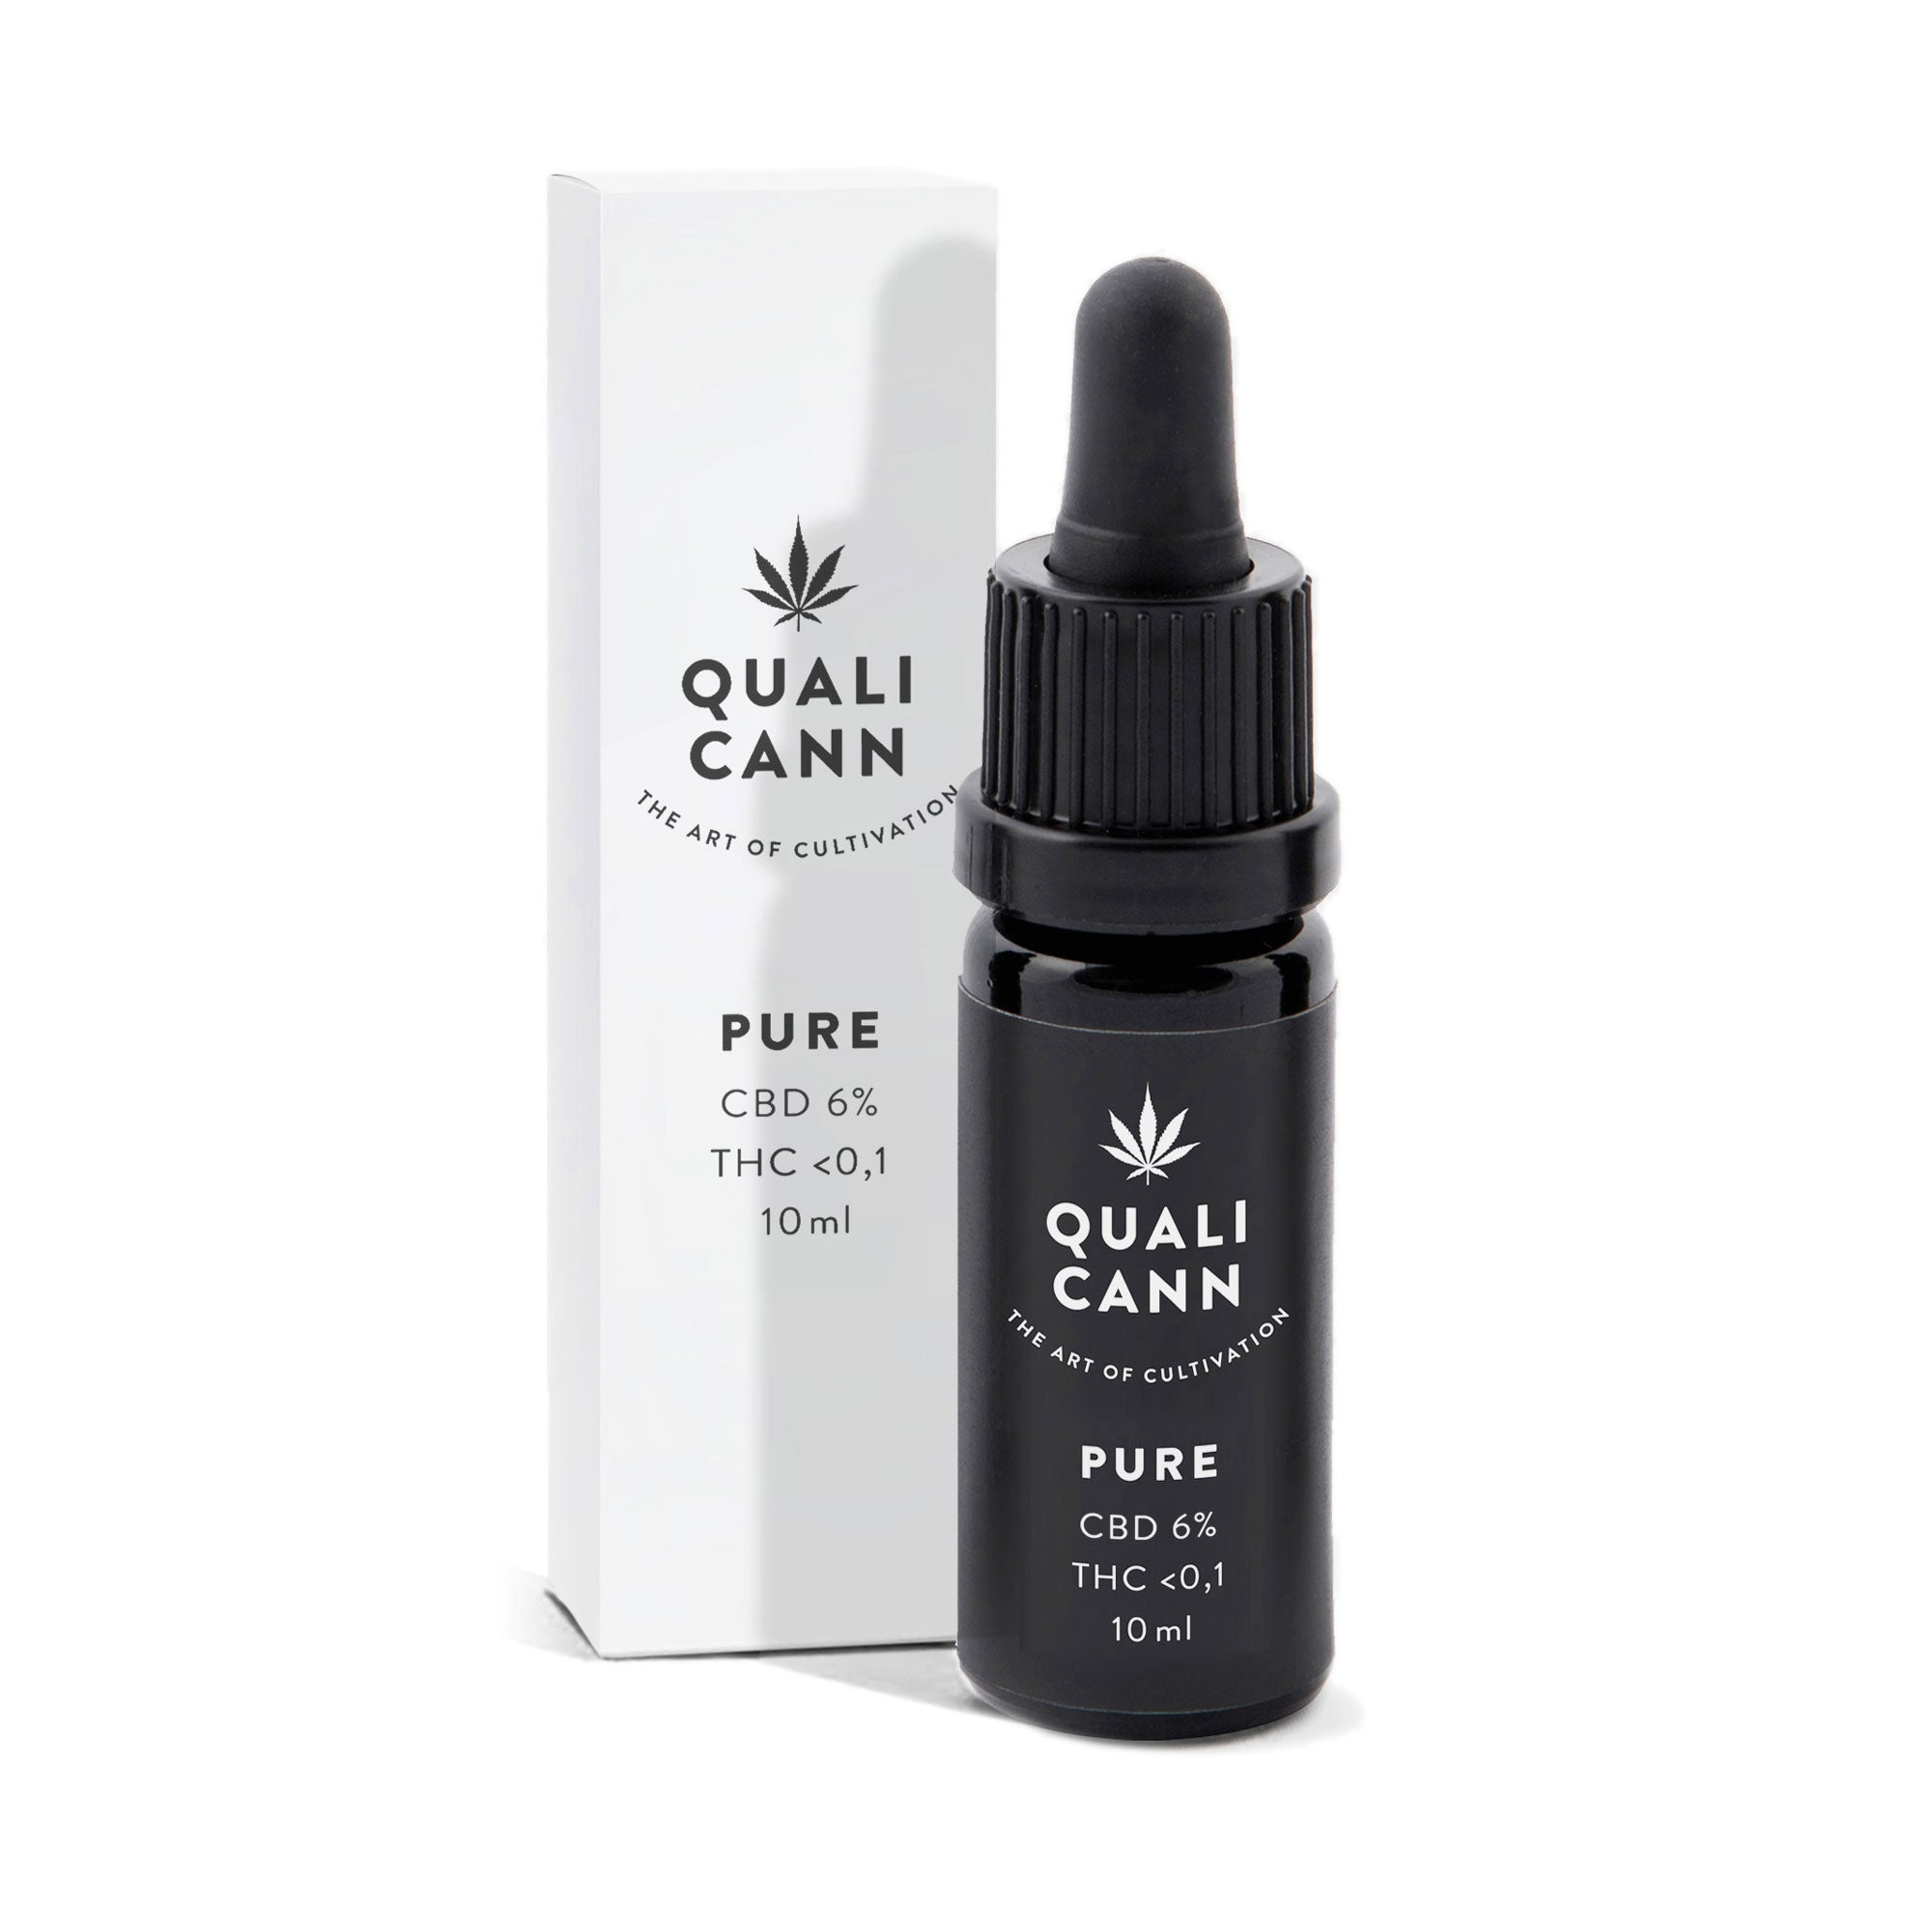 Pure 6% - CBD Oil (600mg)